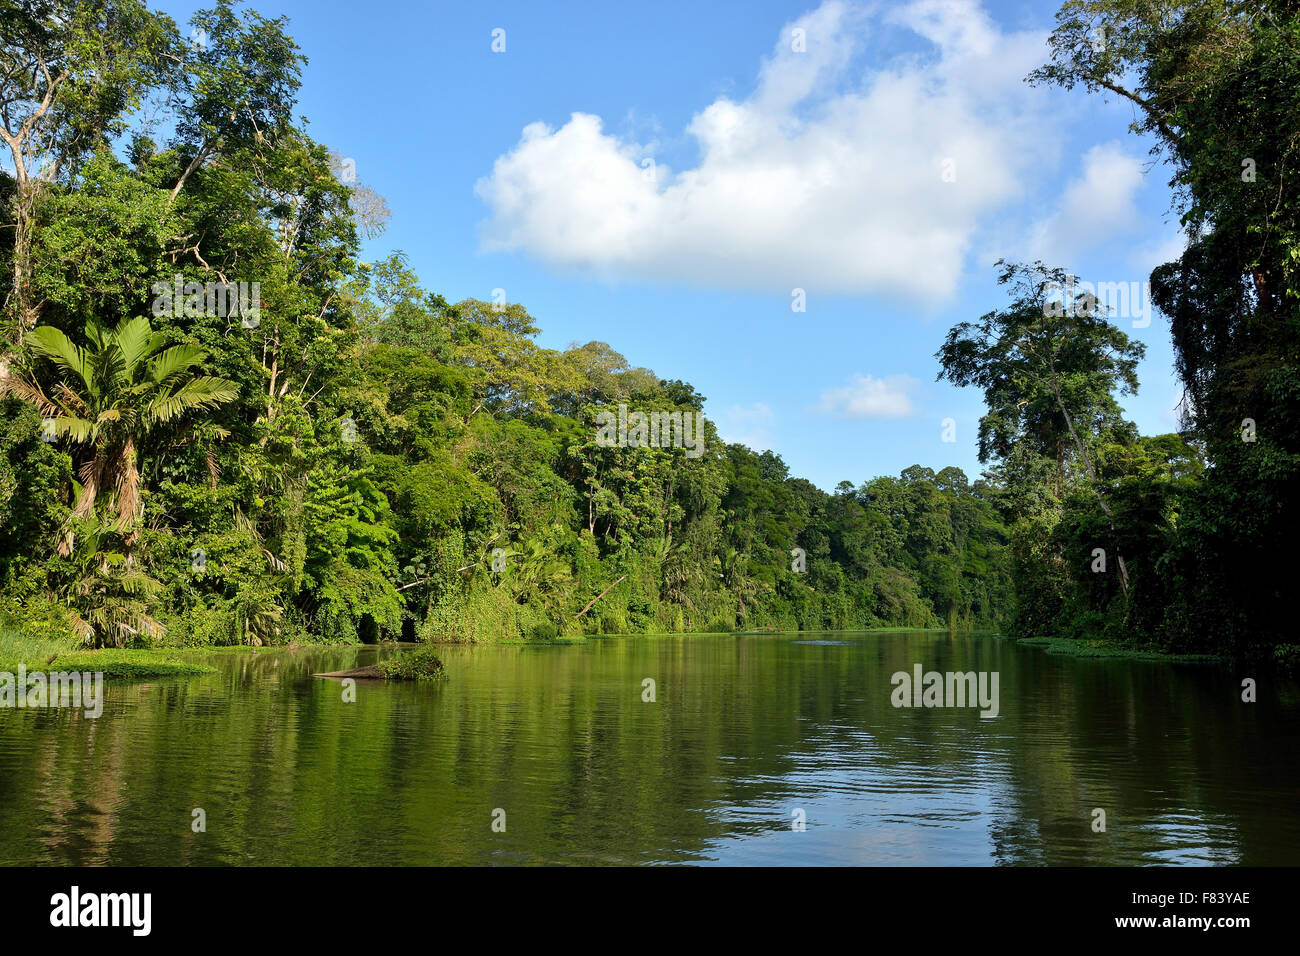 tortuguero costa rica photos tortuguero costa rica images alamy. Black Bedroom Furniture Sets. Home Design Ideas